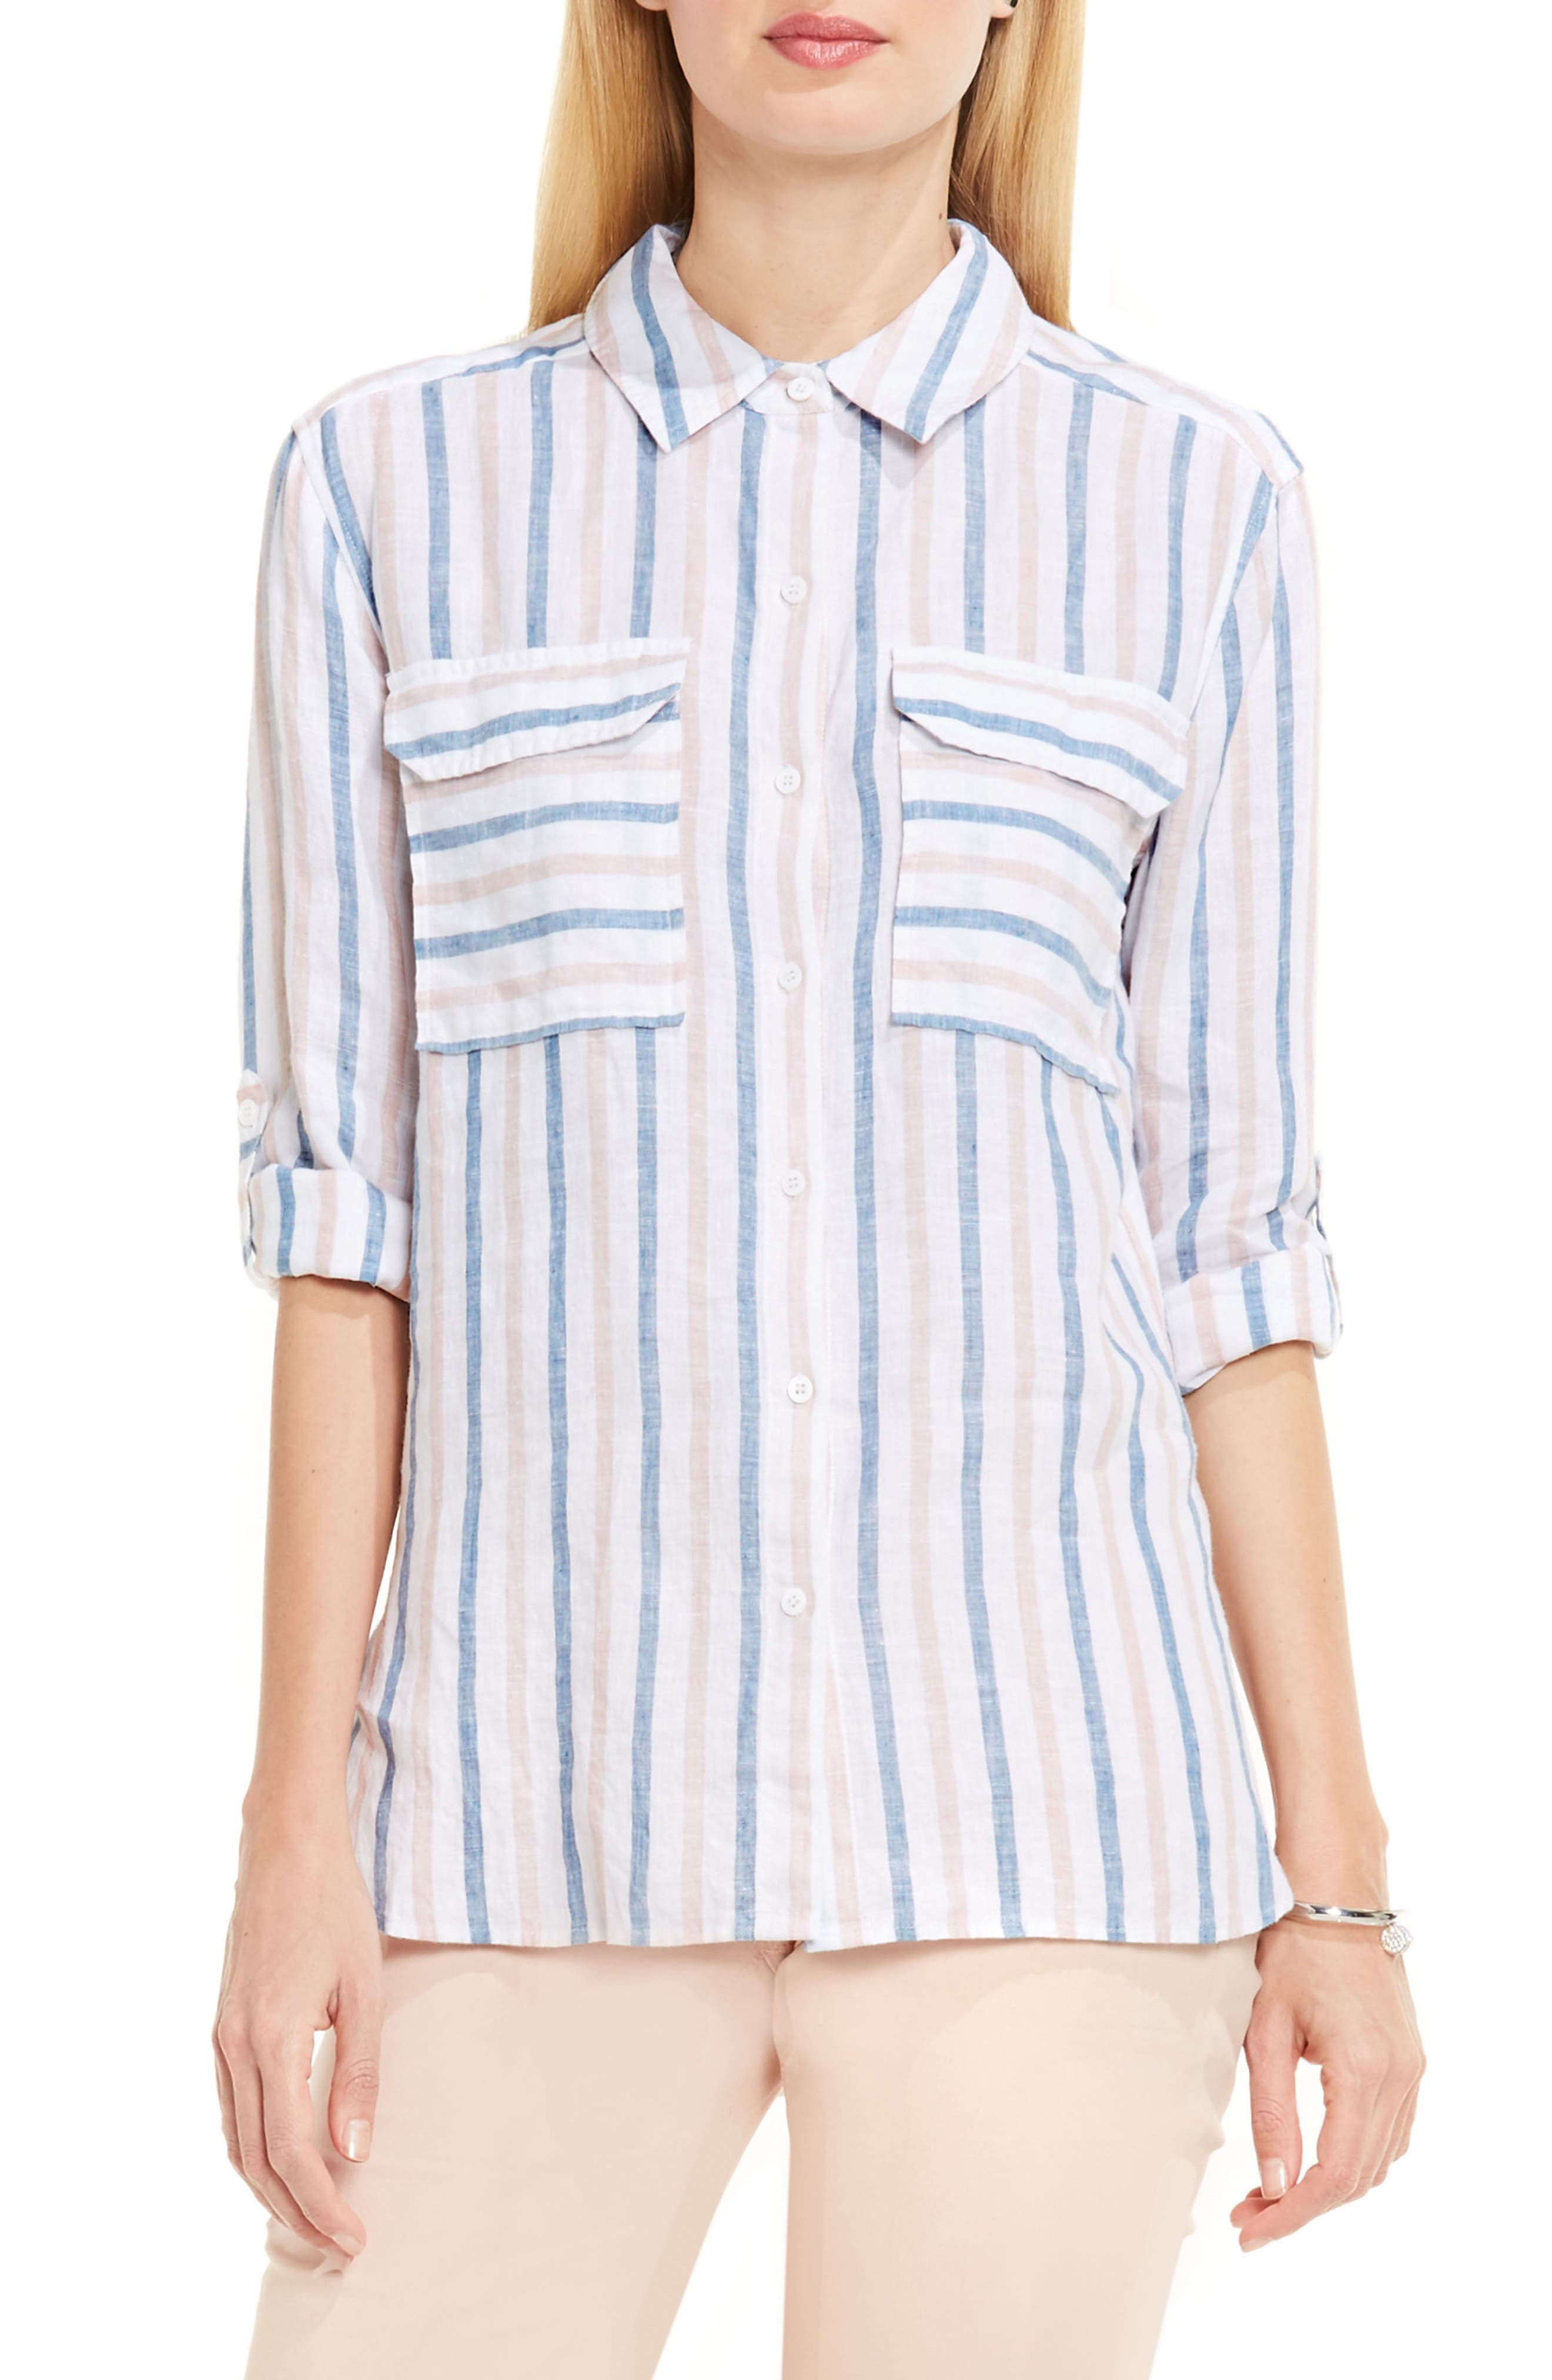 Alternate Image 1 Selected - Two by Vince Camuto Canopy Stripe Linen Shirt